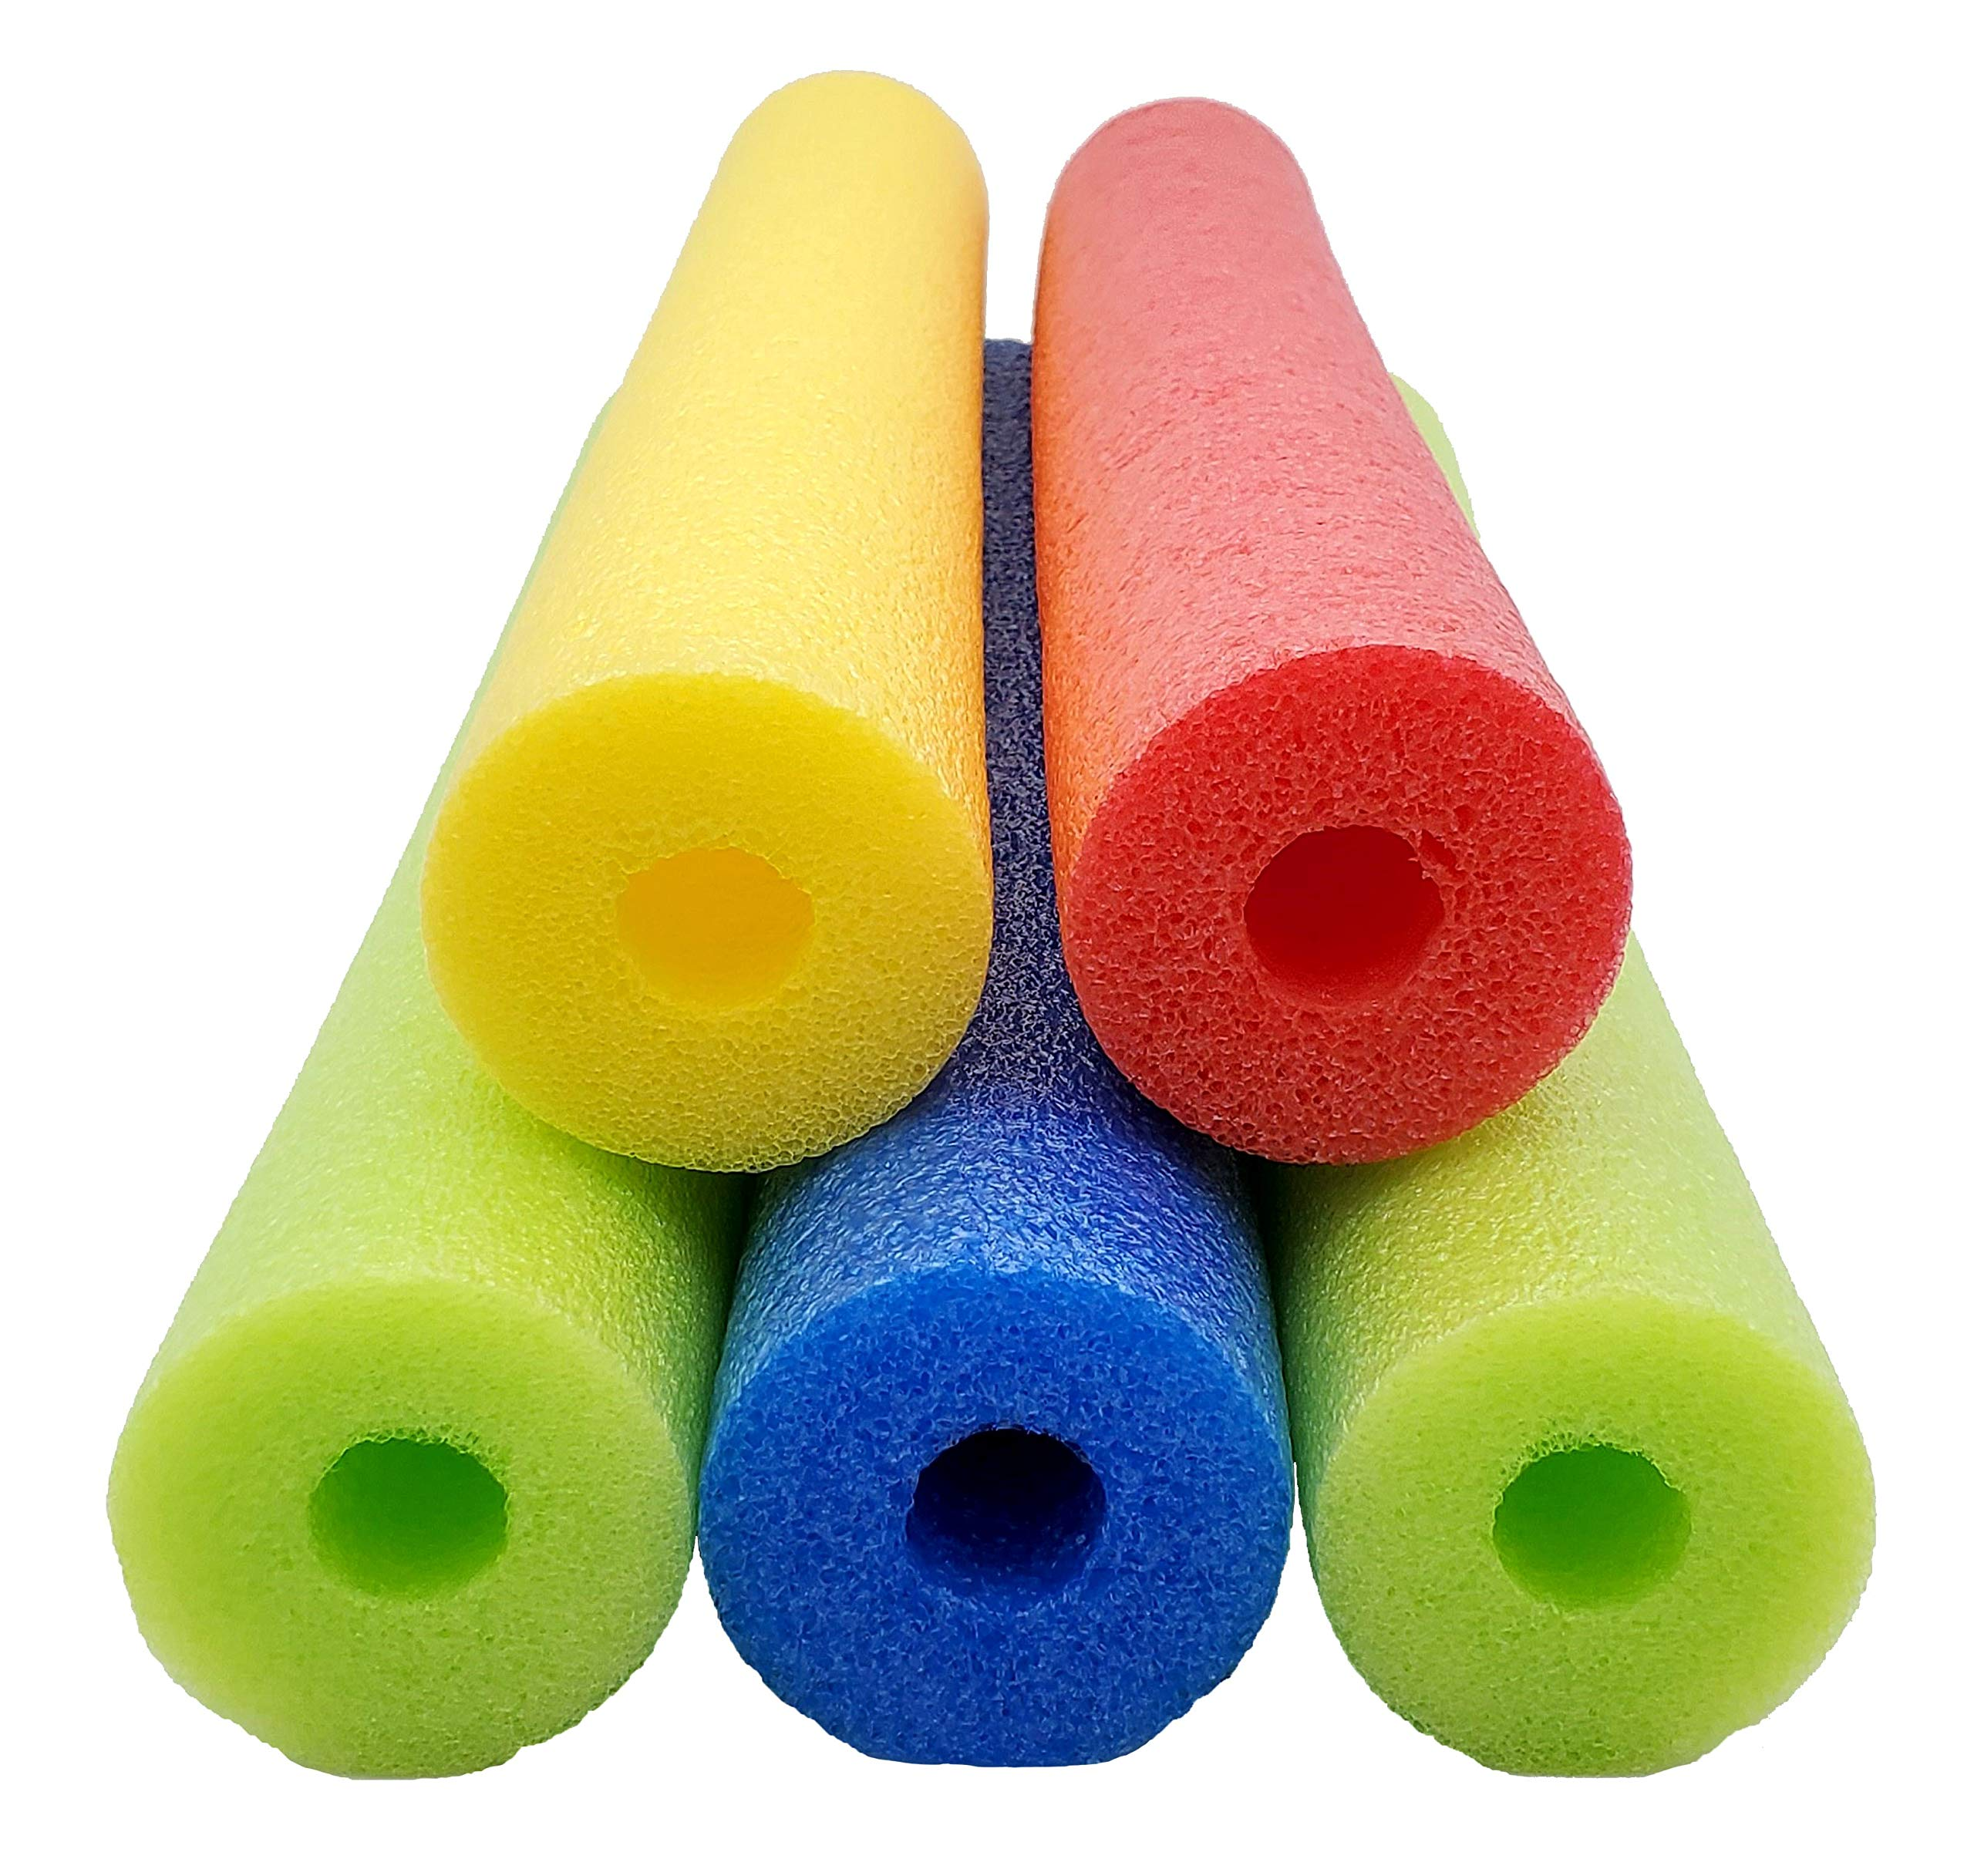 Fix Find 52 Inch Colorful Foam Pool Swim Noodle 5 Pack in Bright Jewel Tone Multicolors by Fix Find